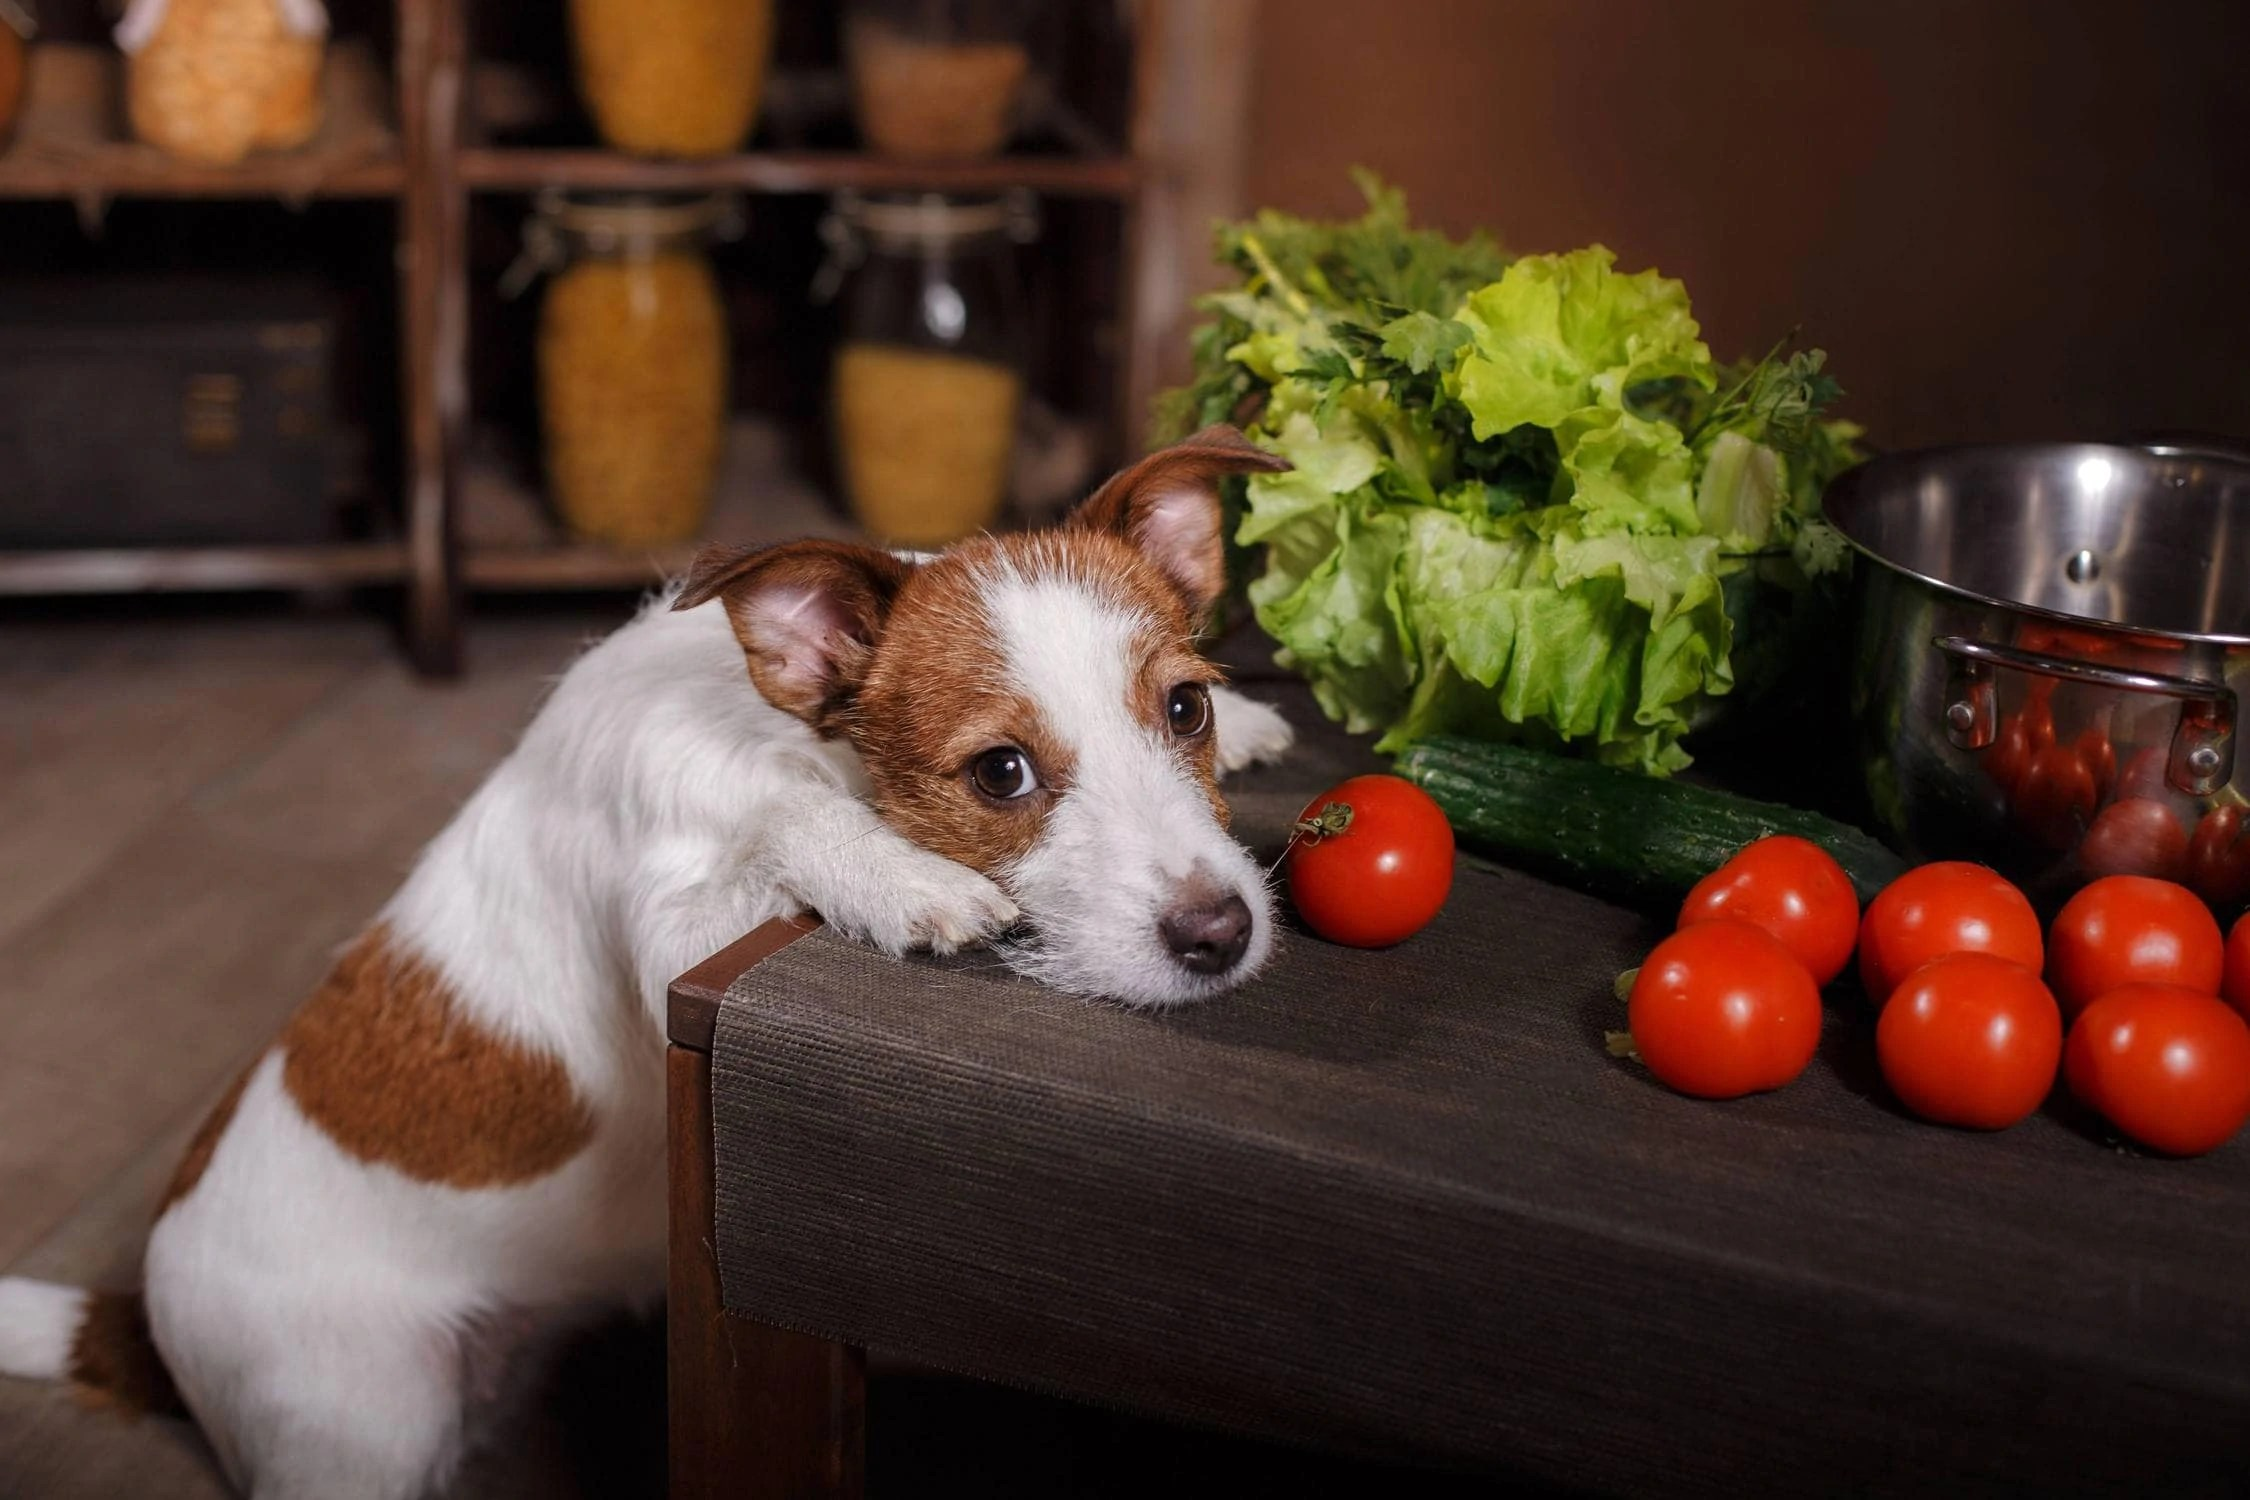 Creative Tomato Sauce Tomato Sauce Can Dogs Eat Mackerel Fact Or Can Dogs Eat Practical Paw Dog Loverstoolkit Fact Or Can Dogs Eat Practical Paw Dog Can Dogs Eat Fish houzz 01 Can Dogs Eat Tomato Sauce